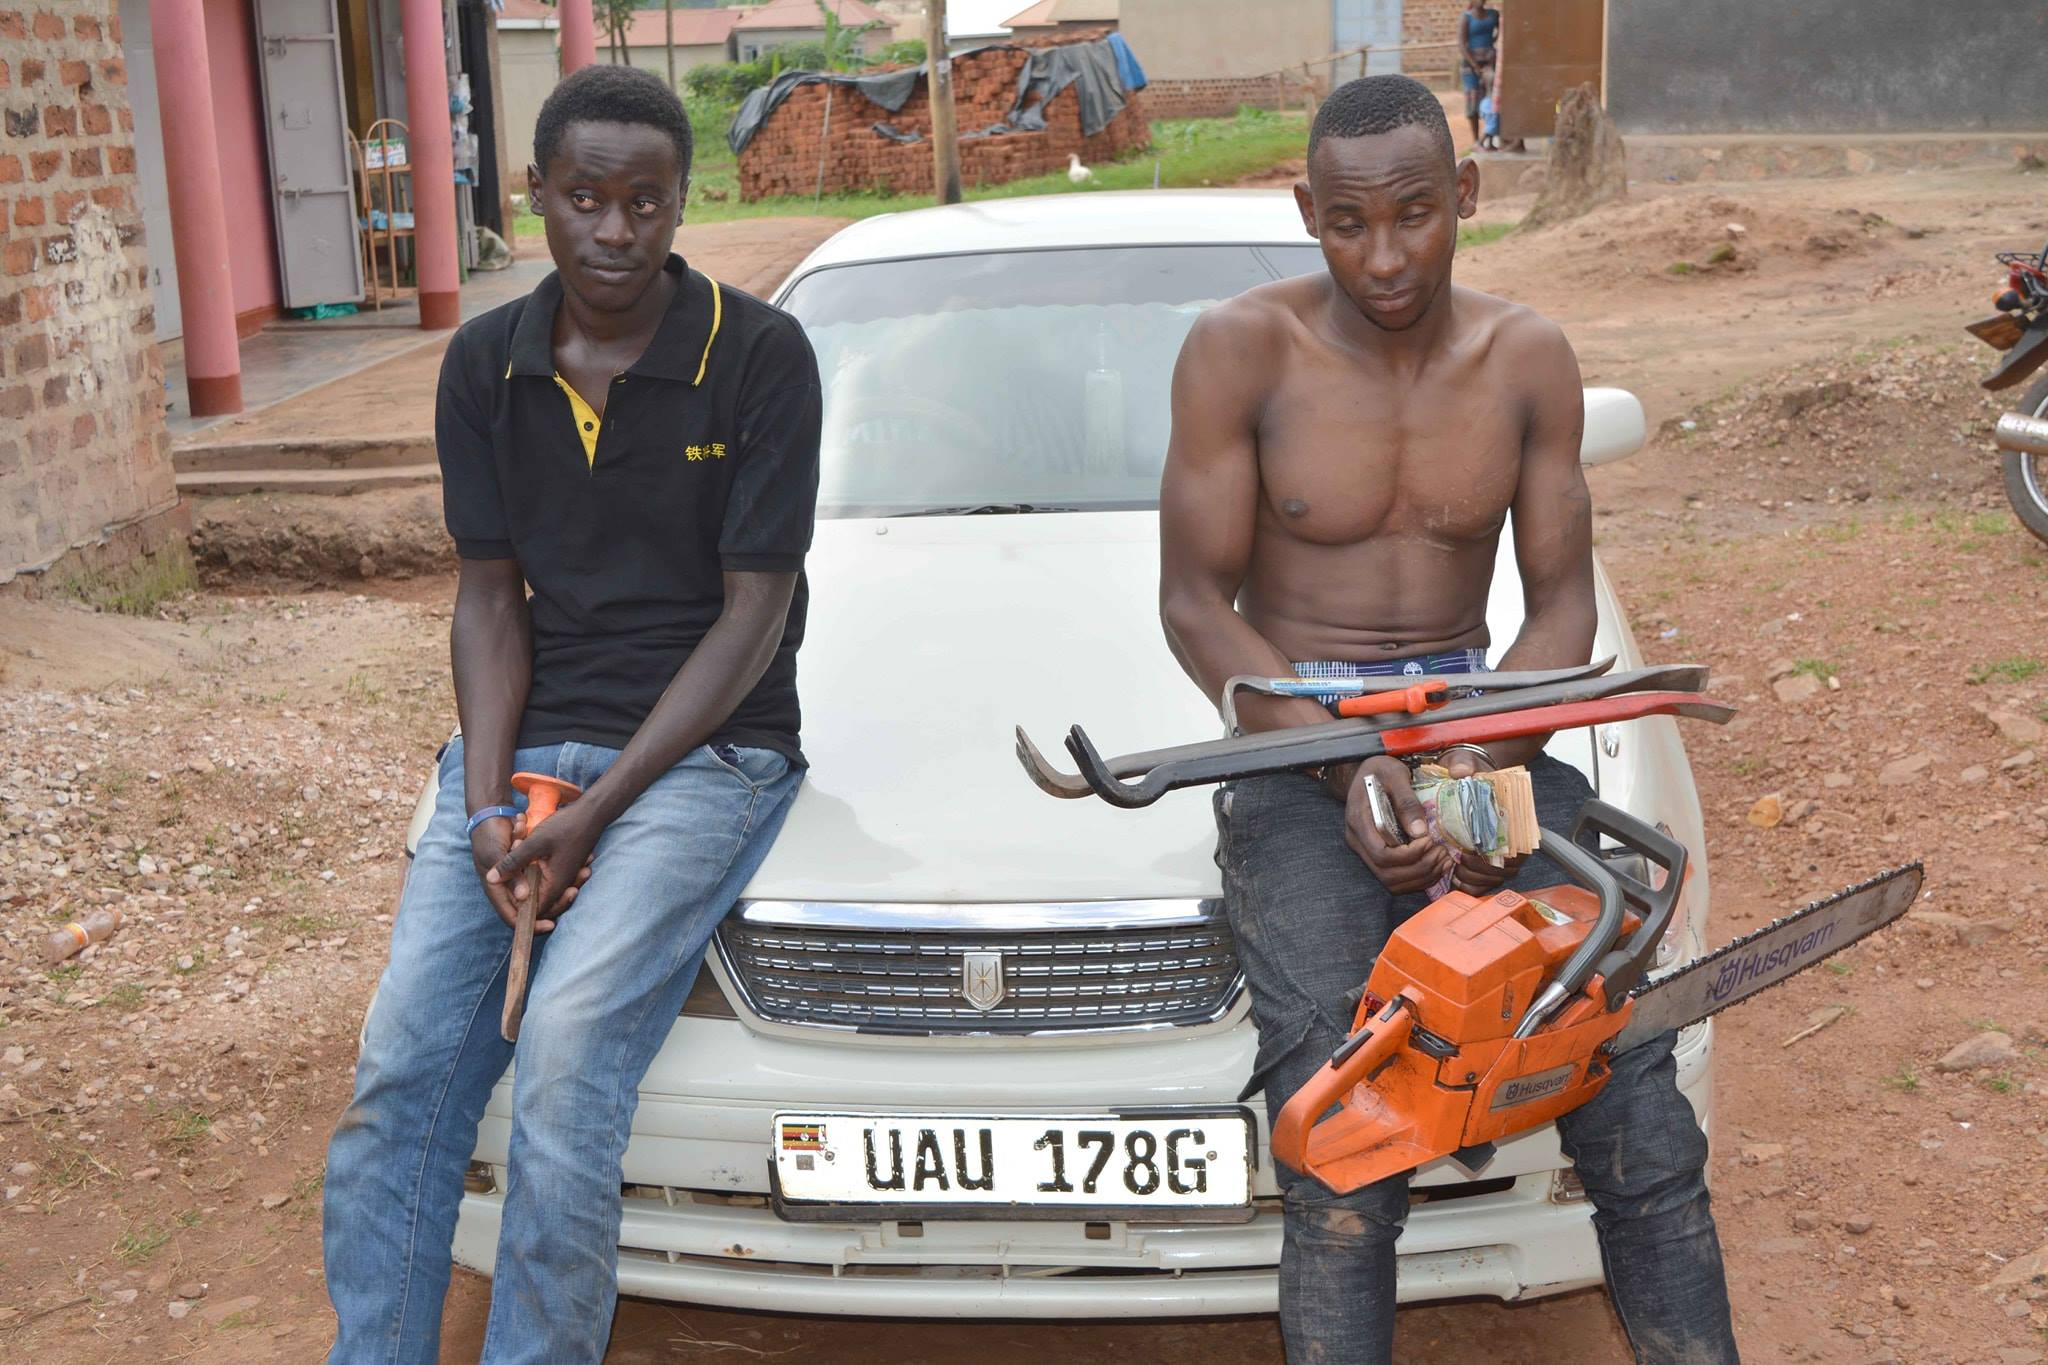 Police arrested suspects, Hakim Kigozi and his collegue Darius Atwine. Kigozi after they were found in possession of large sums of money suspected to have been stolen from the Indians, and other items (POLICE PHOTO)